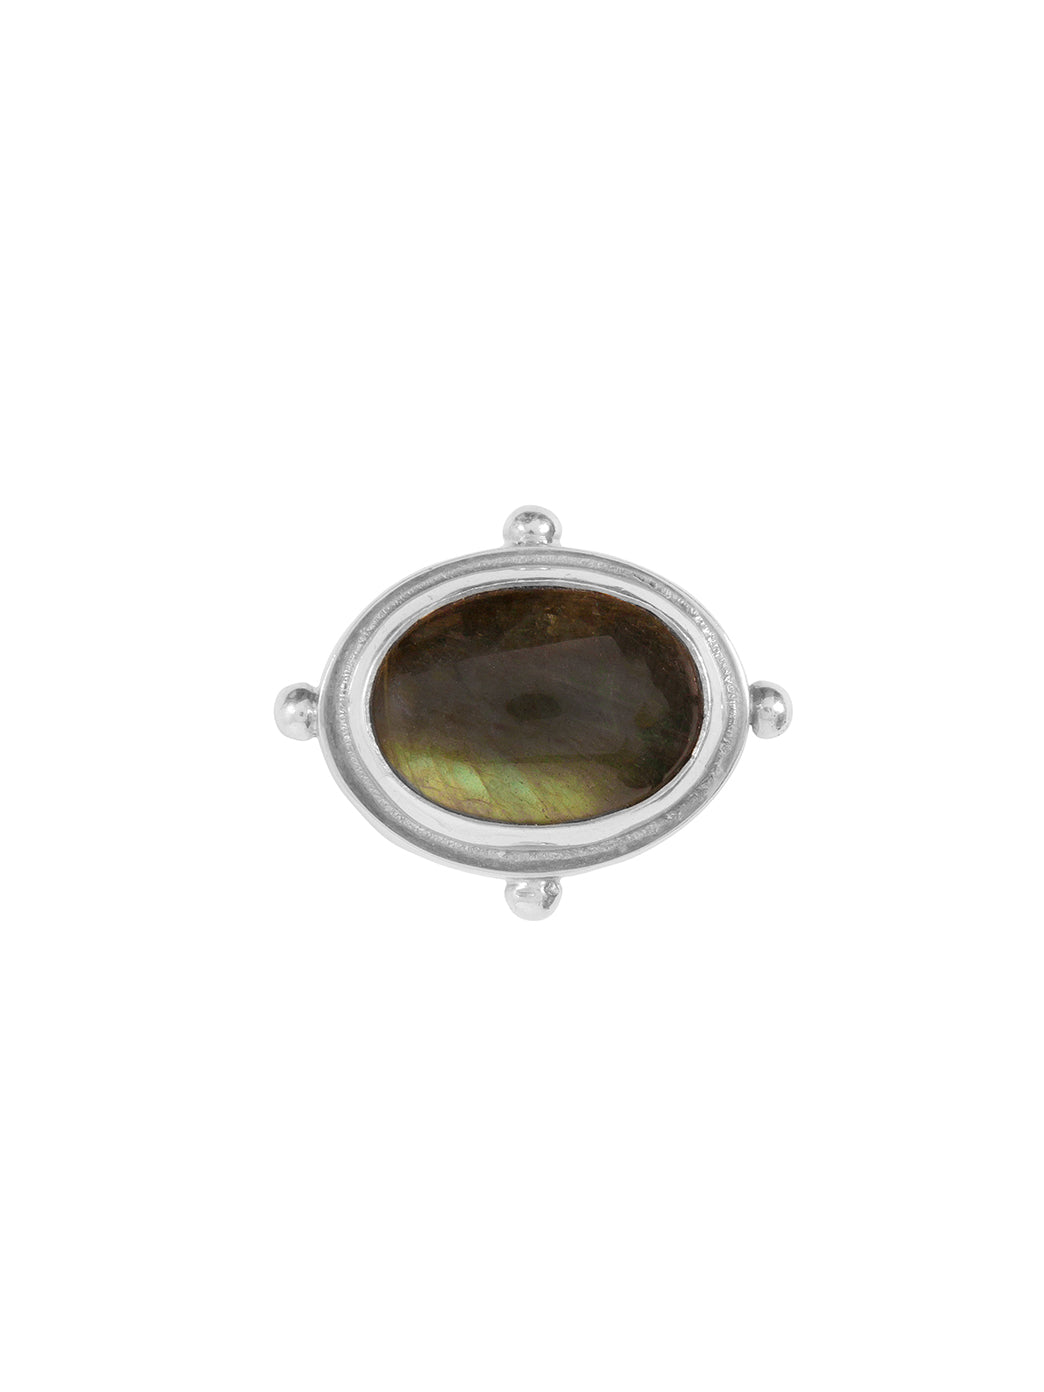 Fiorina Jewellery Cocktail Ring Labradorite